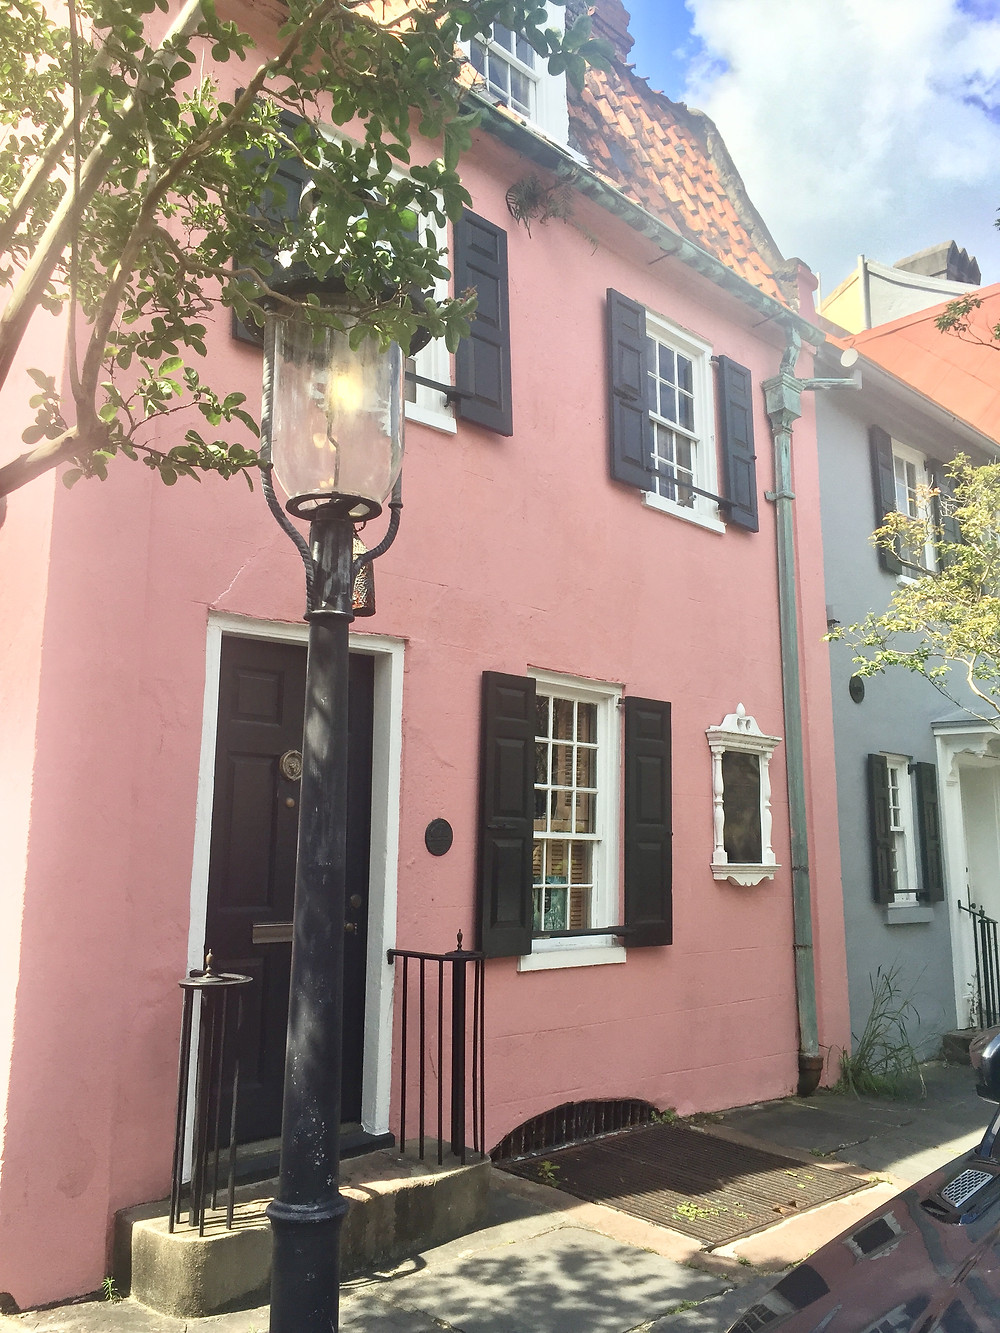 The pink house Charleston, SC